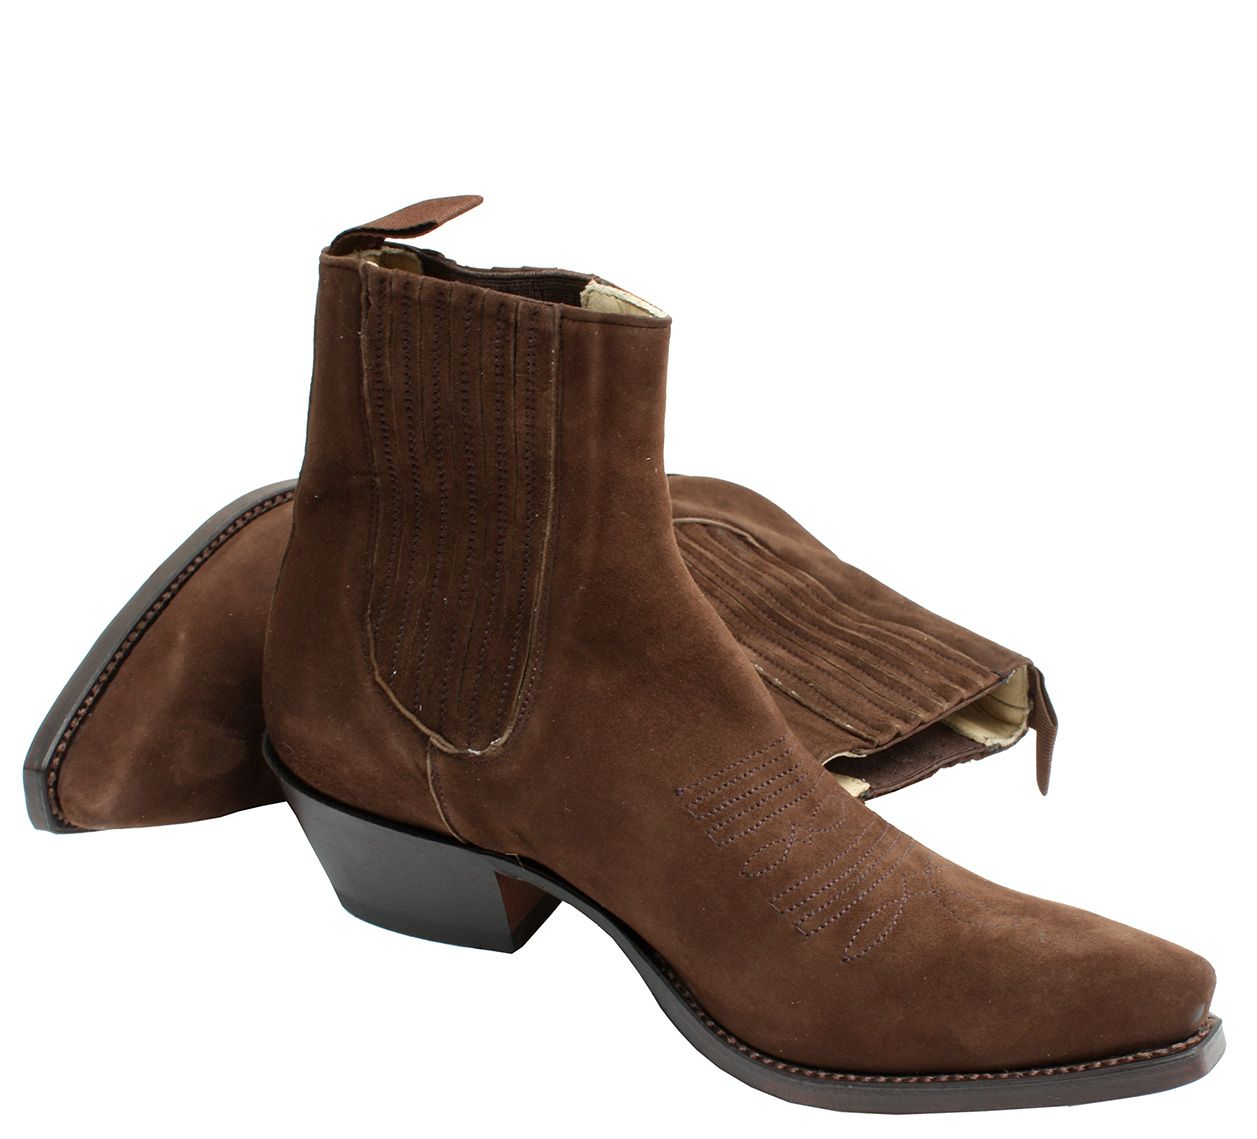 49ba6c29ab6 Suede ankle boot from R SOLES | R SOLES BOOTS. | Boots, Suede ankle ...